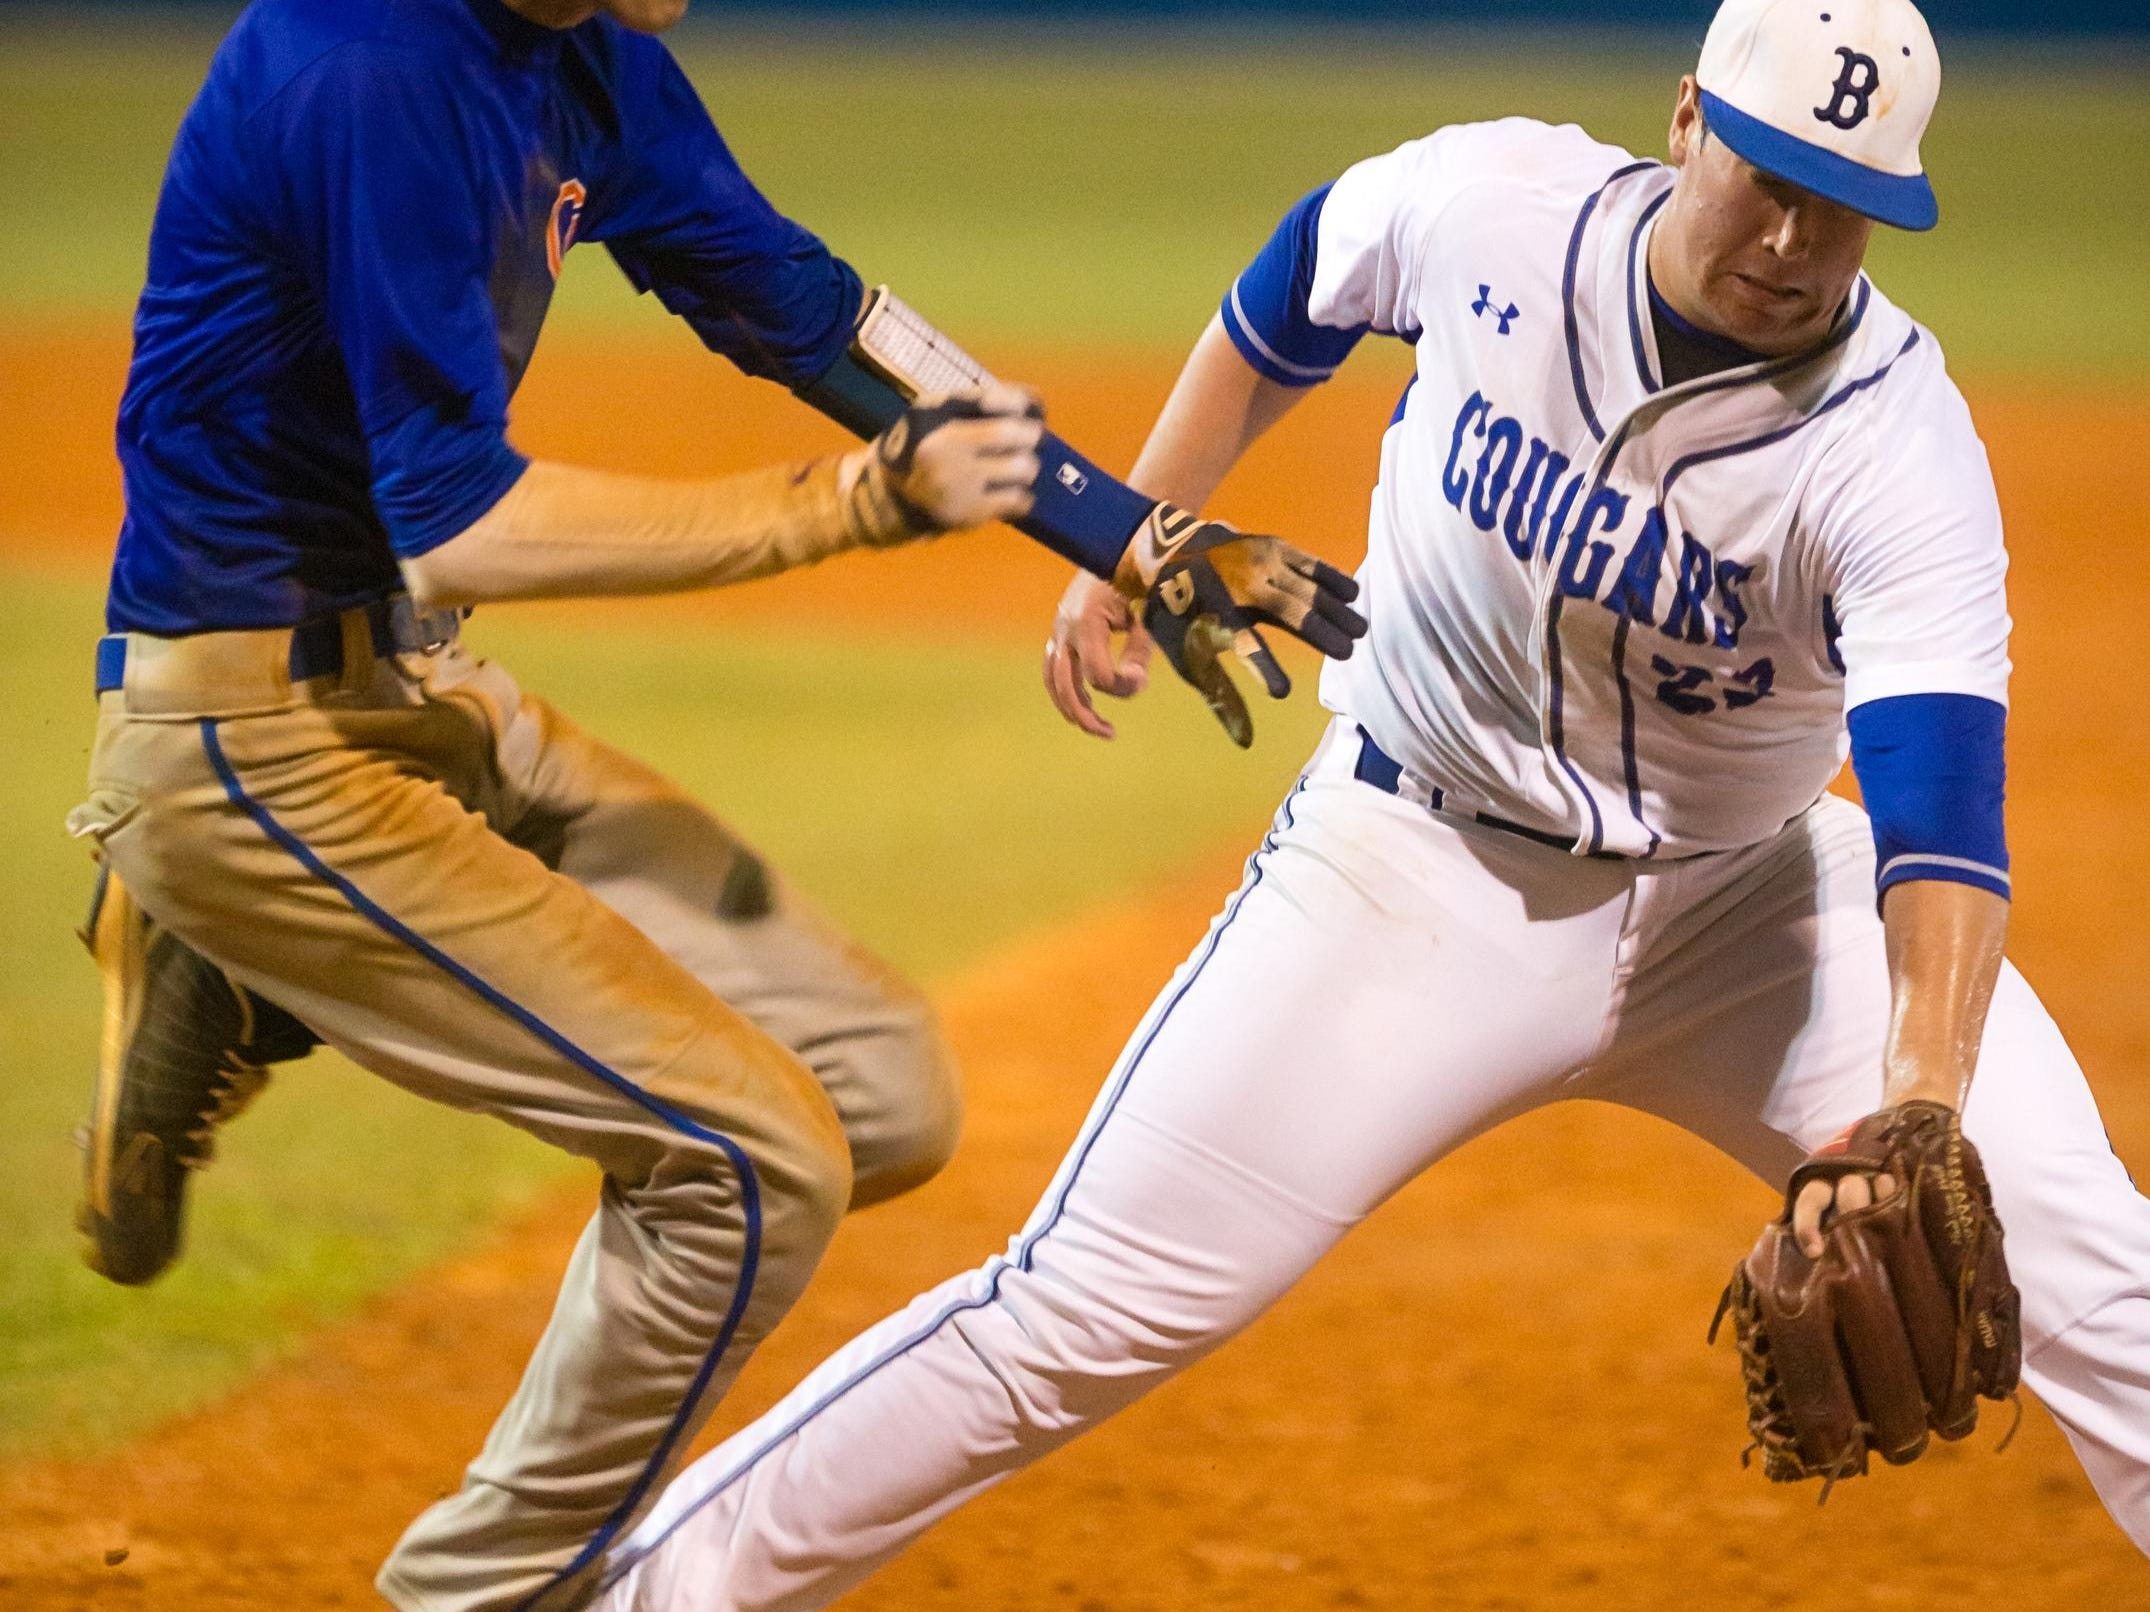 Cape Coral's Kagan Smith slips past the throw to first base to Barron Collier pitcher Logan Langham after a grounder down the first base line in the sixth inning in the Class 6A regional quarterfinal game on Wednesday, April 27, 2016, in North Naples. Barron Collier defeated Cape Coral, 4-3. (David Albers/Staff)